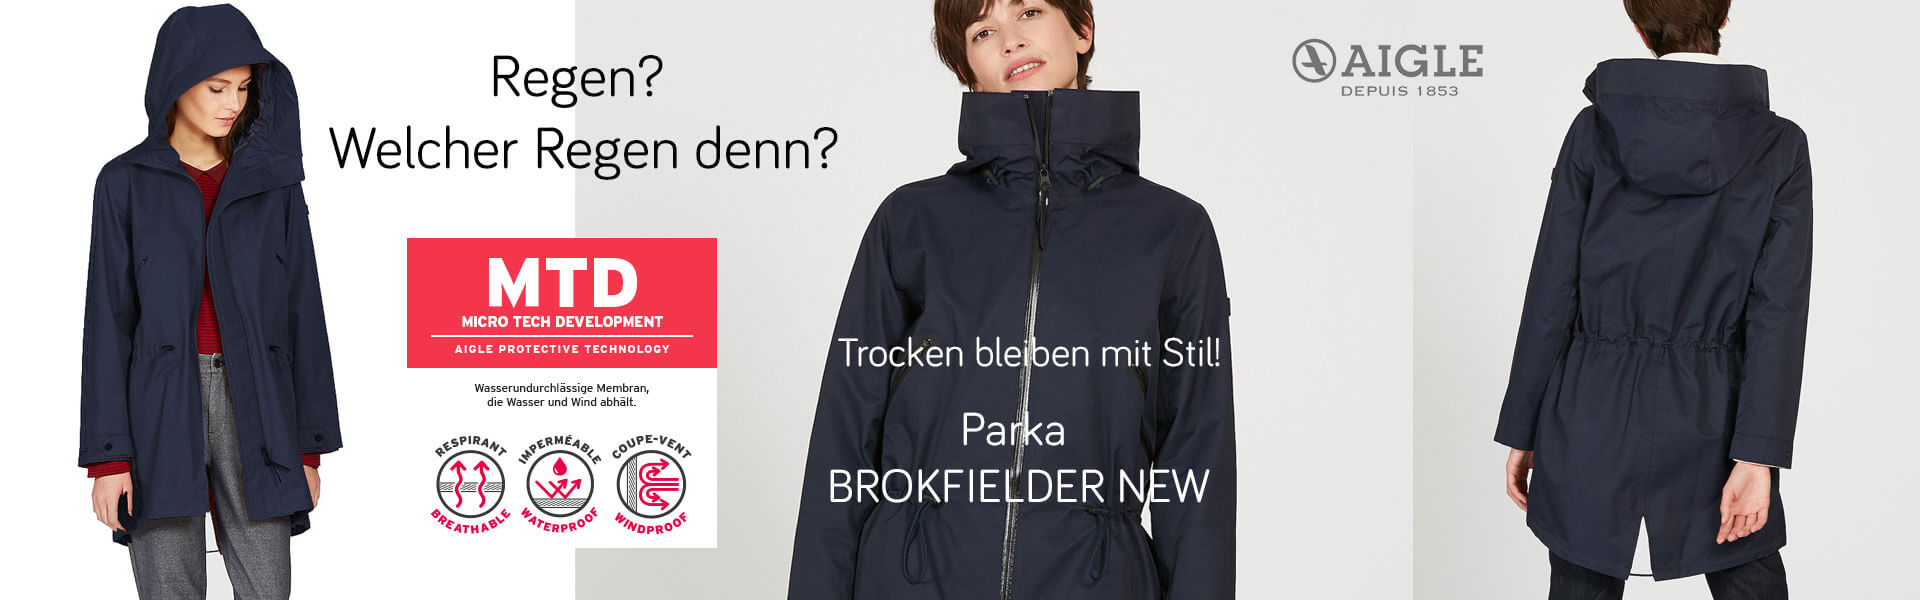 Aigle Brokfielder New Damen Jacke dark navy